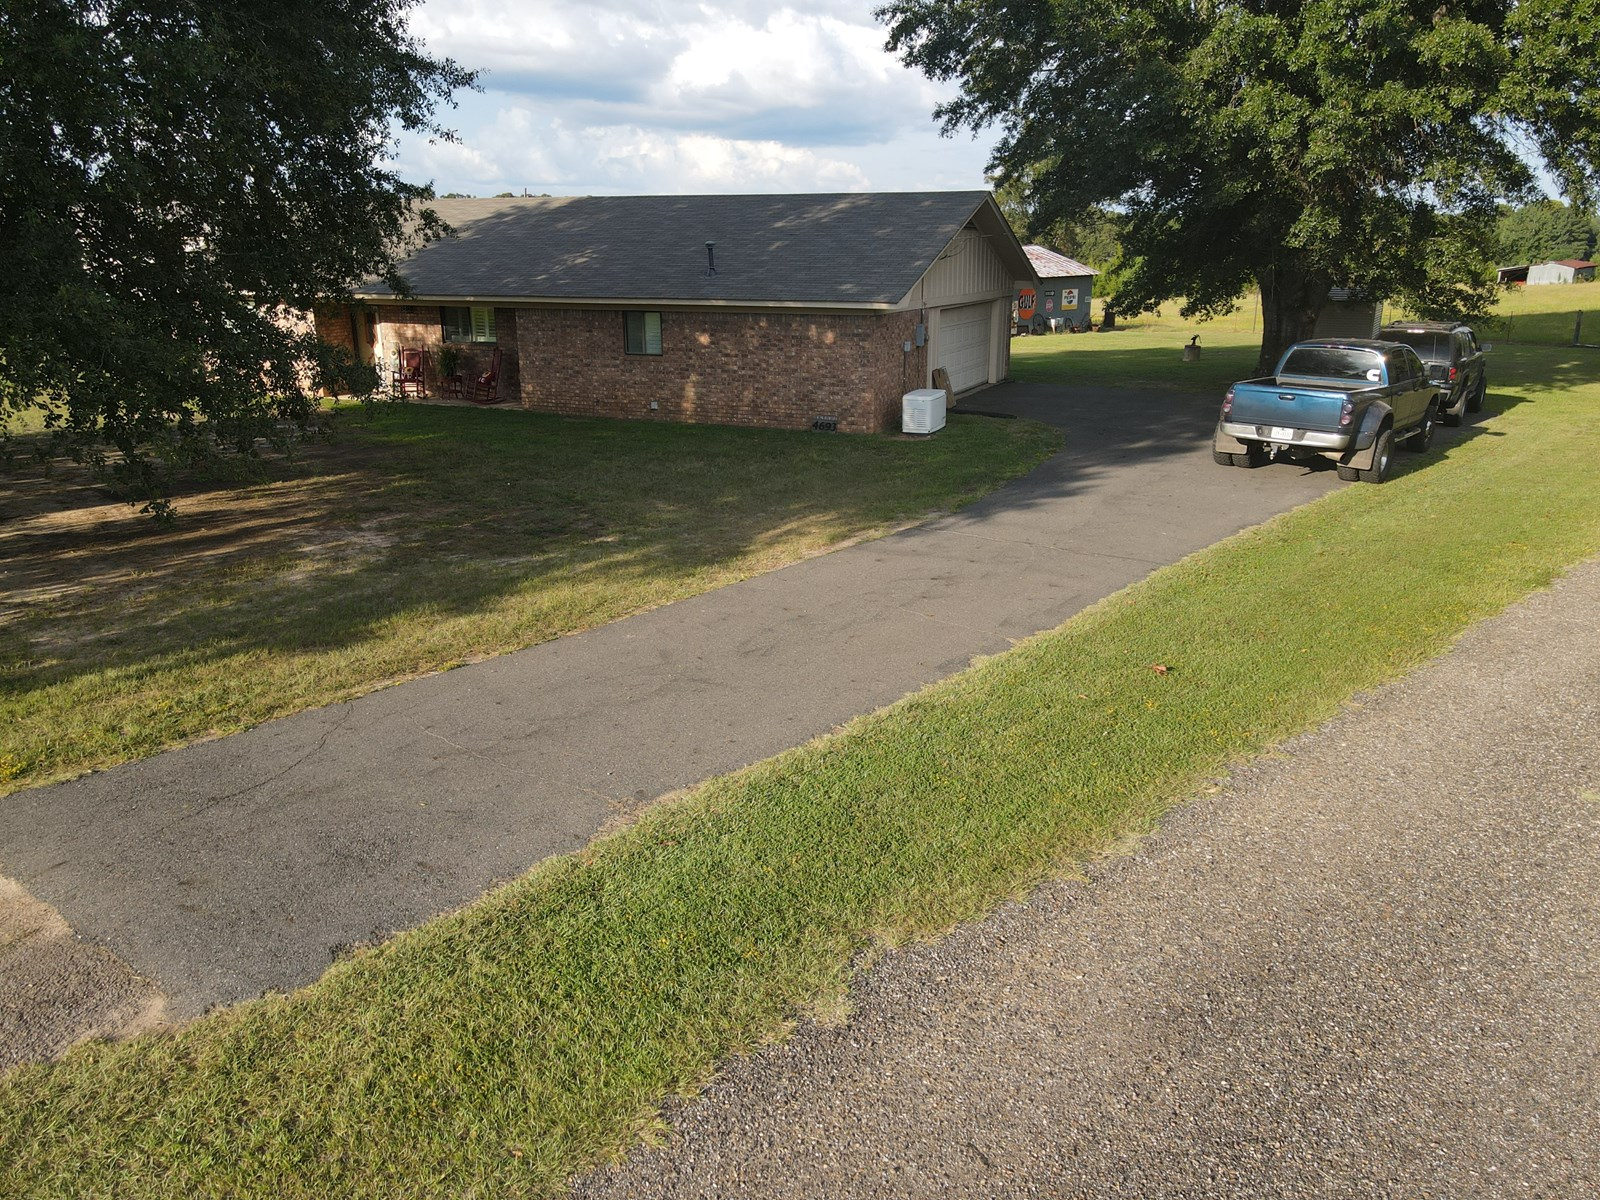 East Texas Country Home with 6.7 acres in Cass County